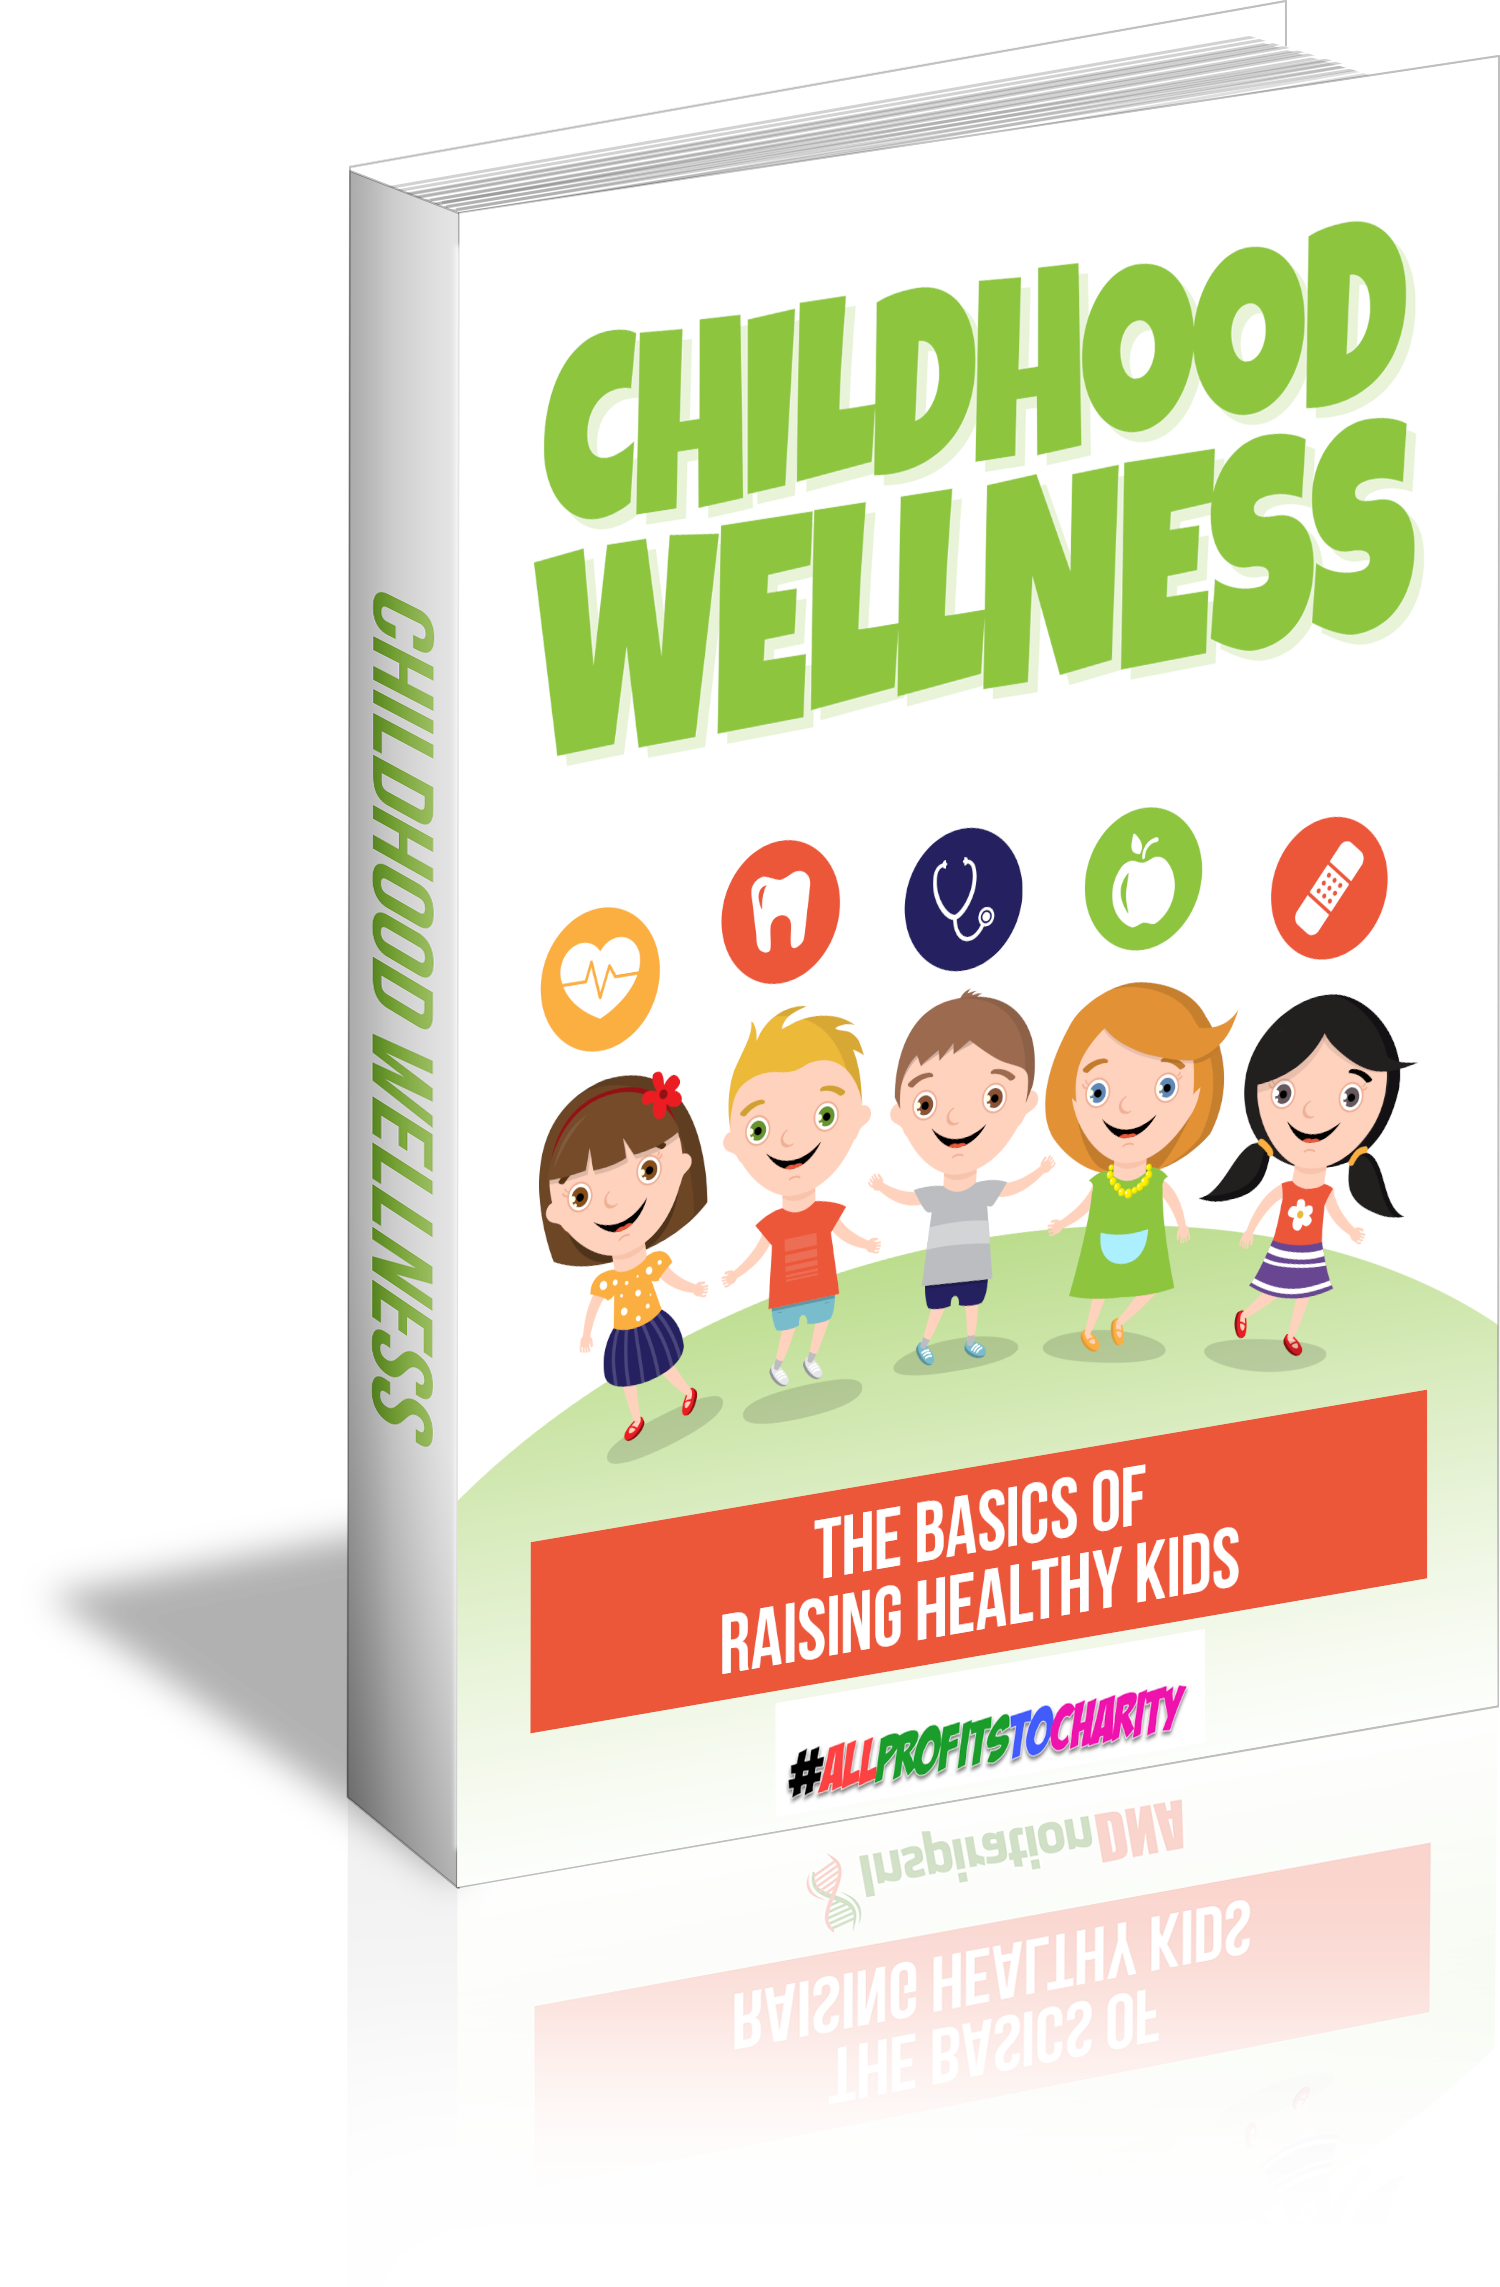 Childhood Wellness cover